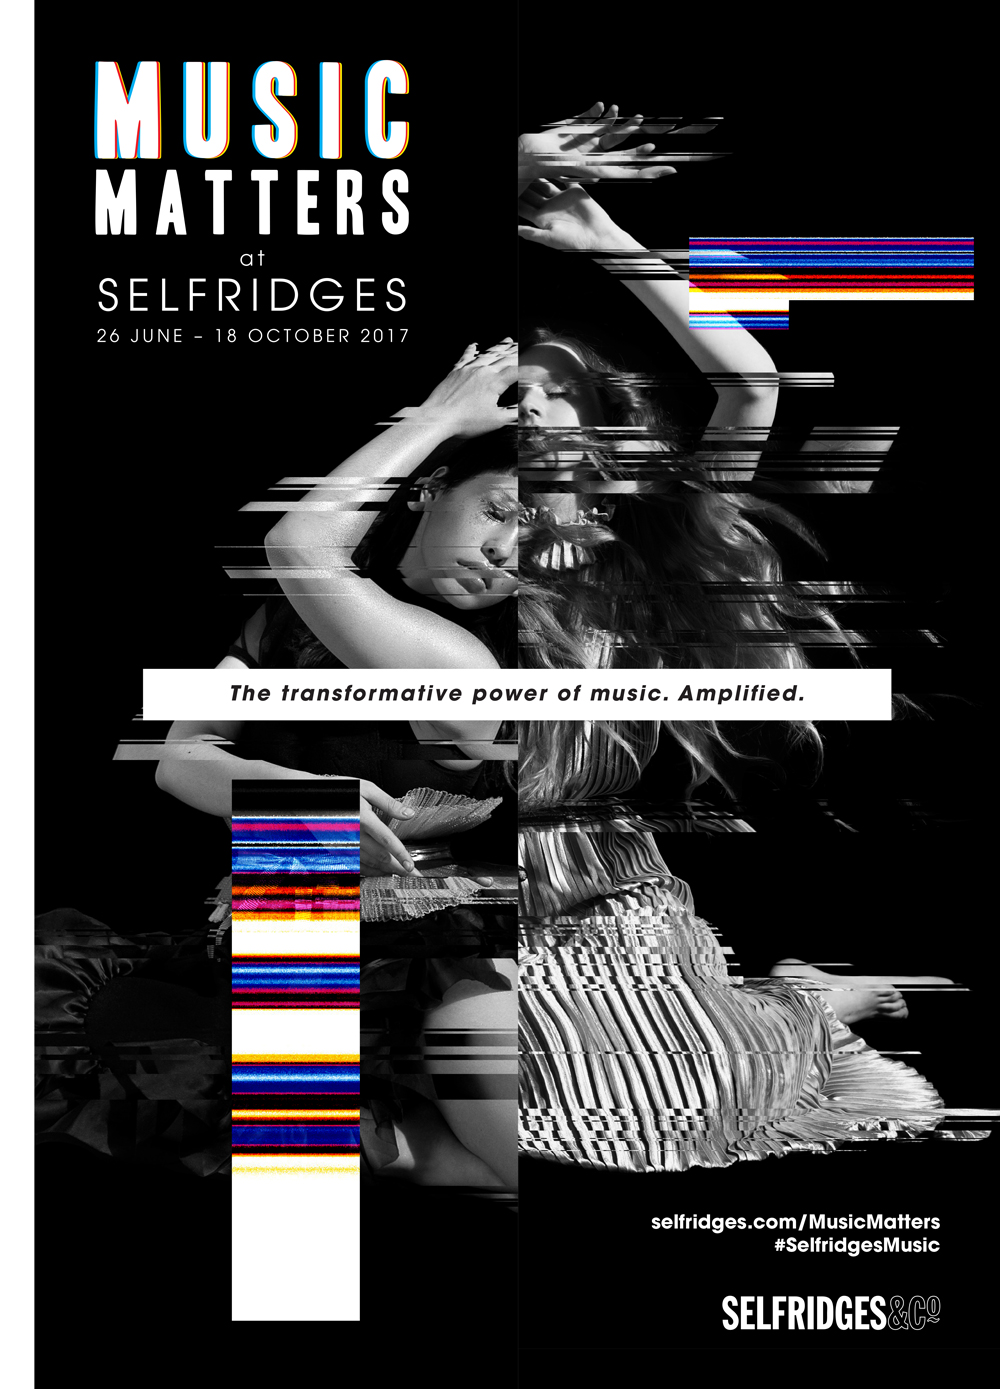 CS17009_Music_Matters_Hero_Poster_A2_AW_HR-4.jpg